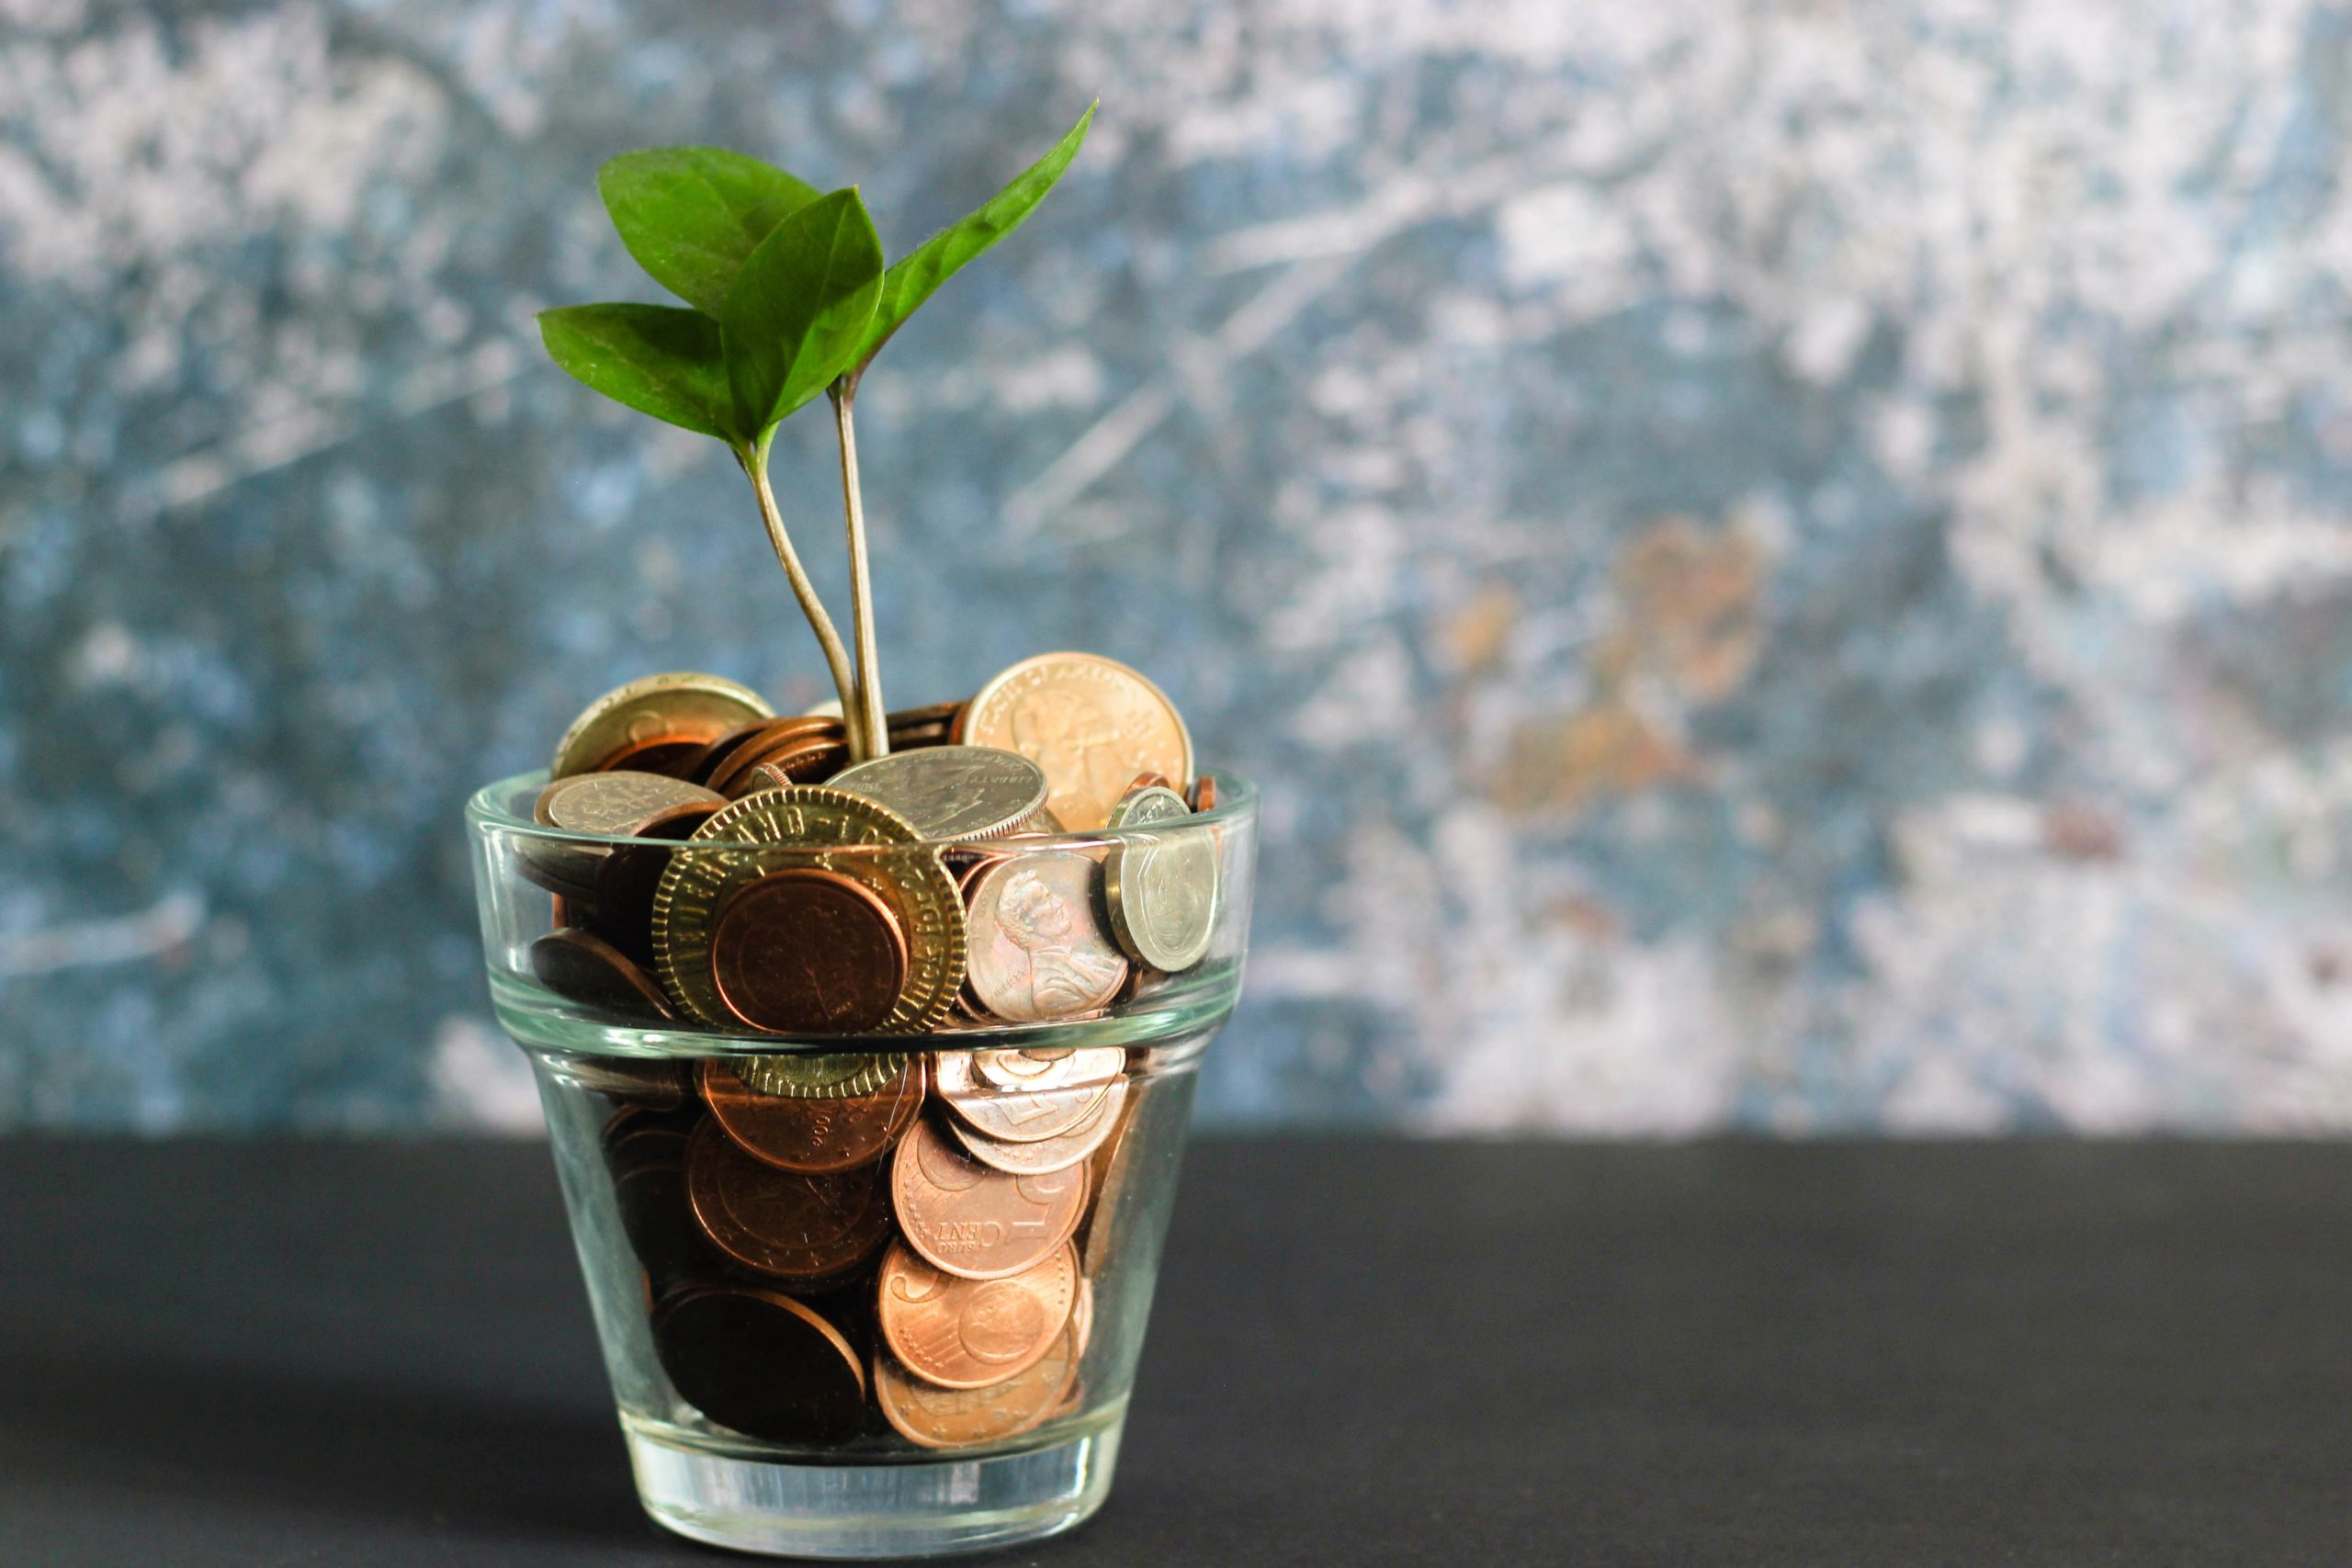 A cup in the table filled with coins and a plant growing from it